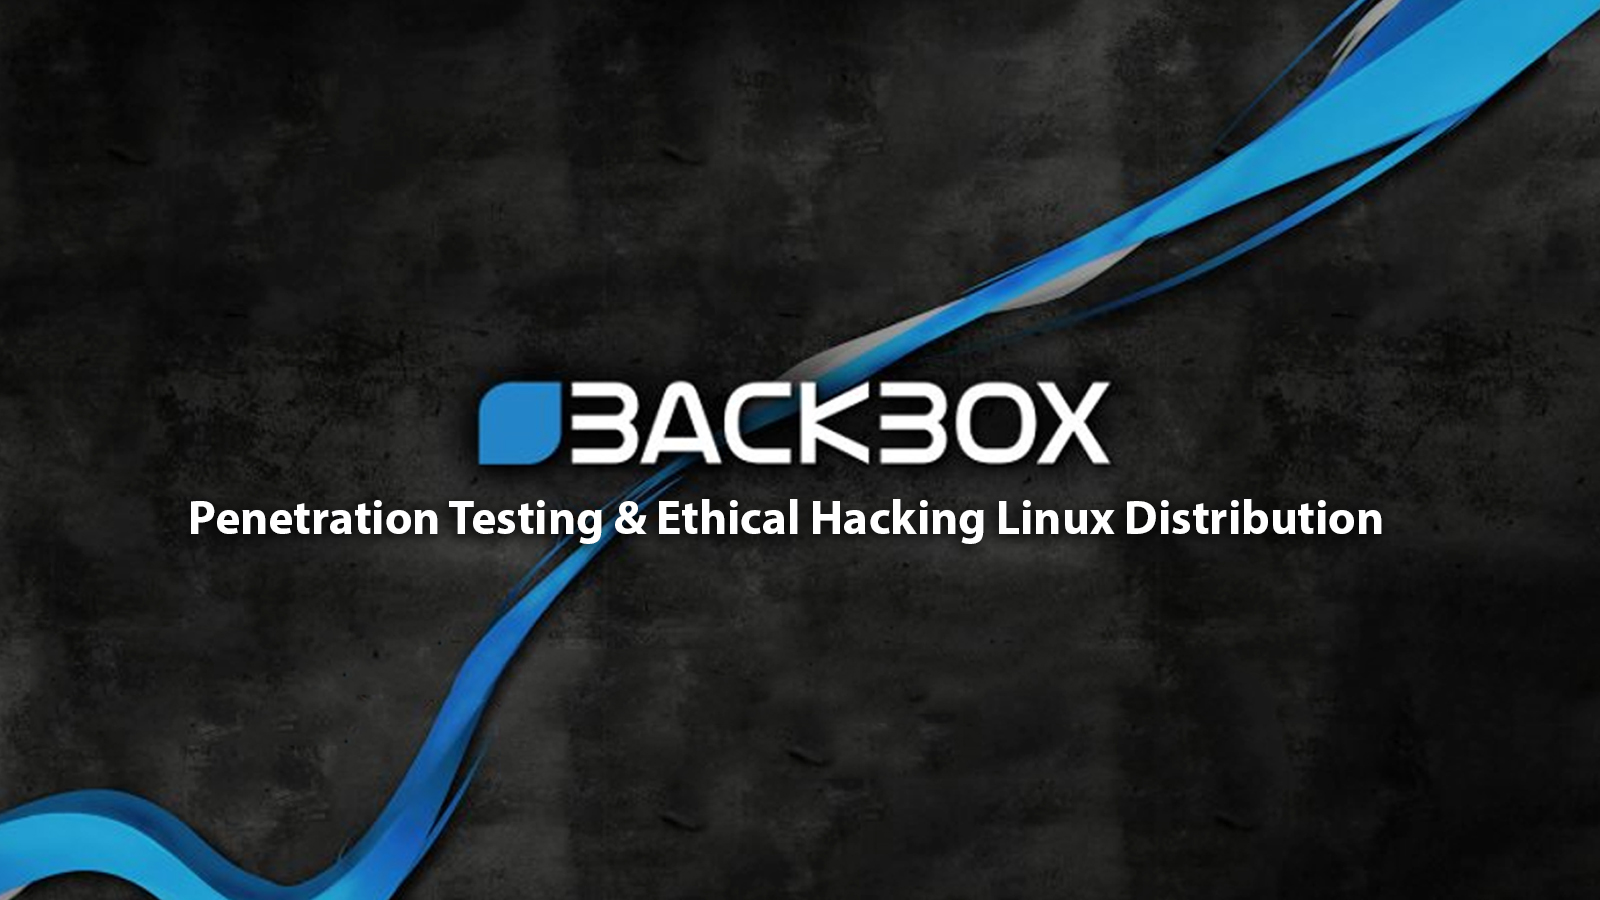 BackBox - Penetration Testing and Ethical Hacking Linux Distribution